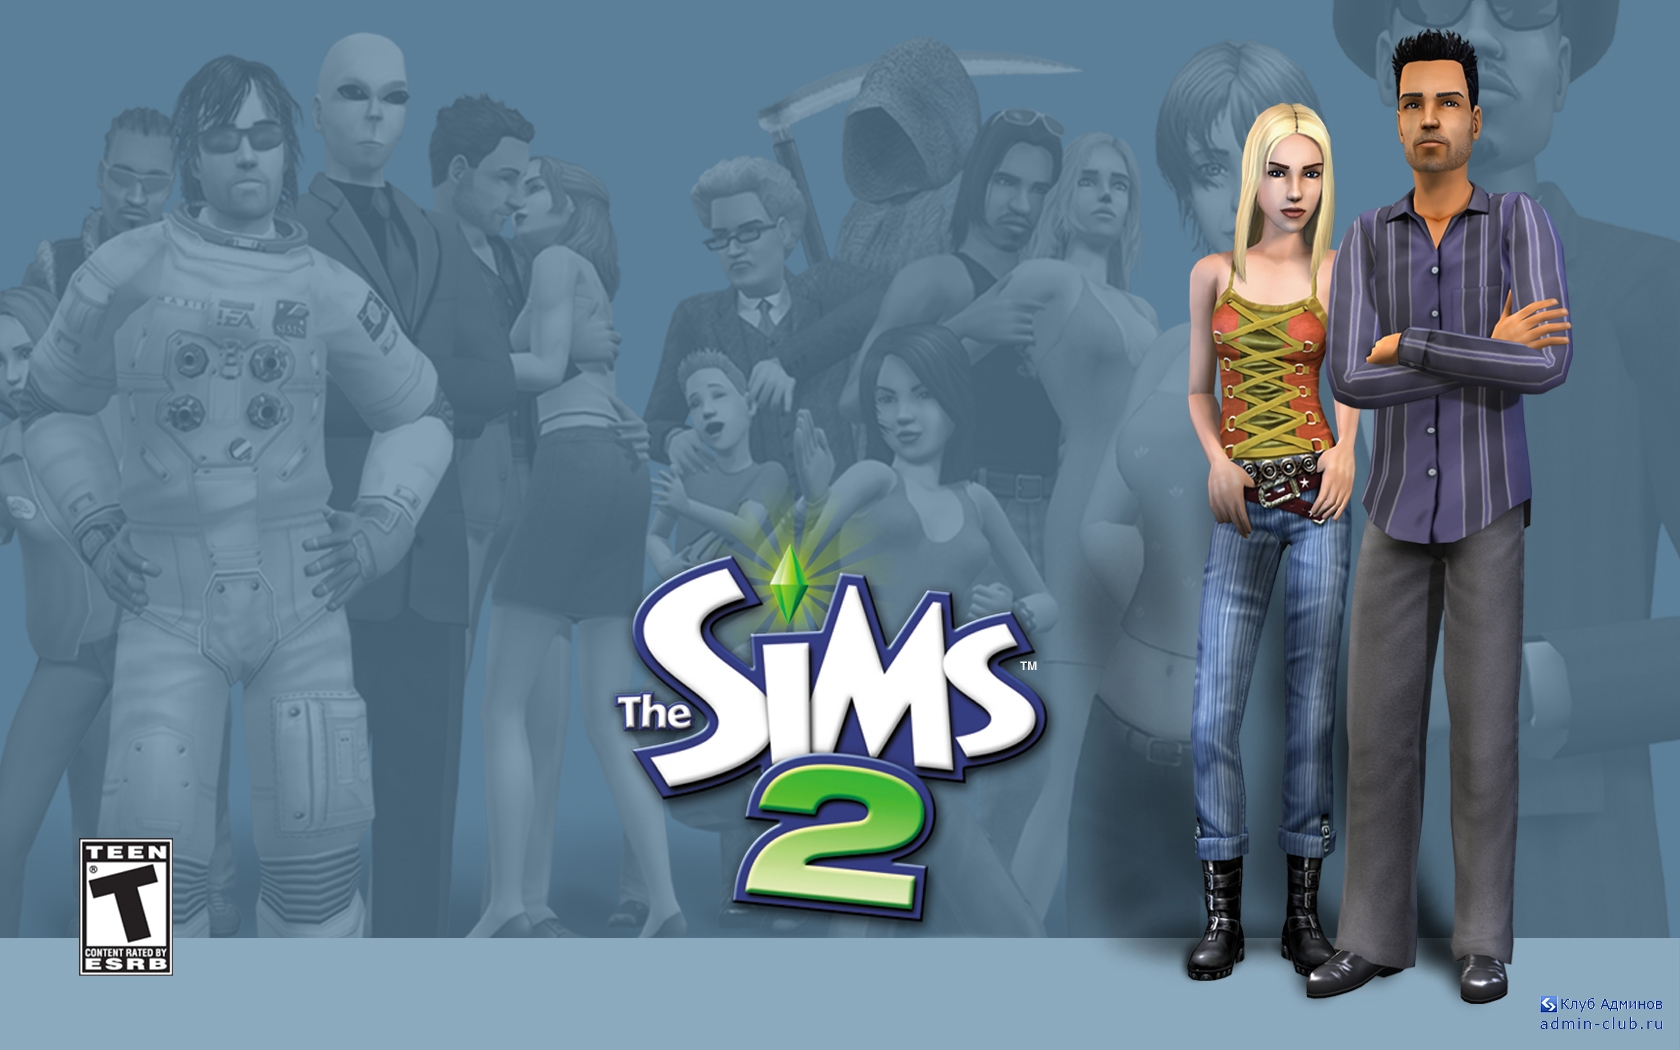 Sims x rated mod erotic whore